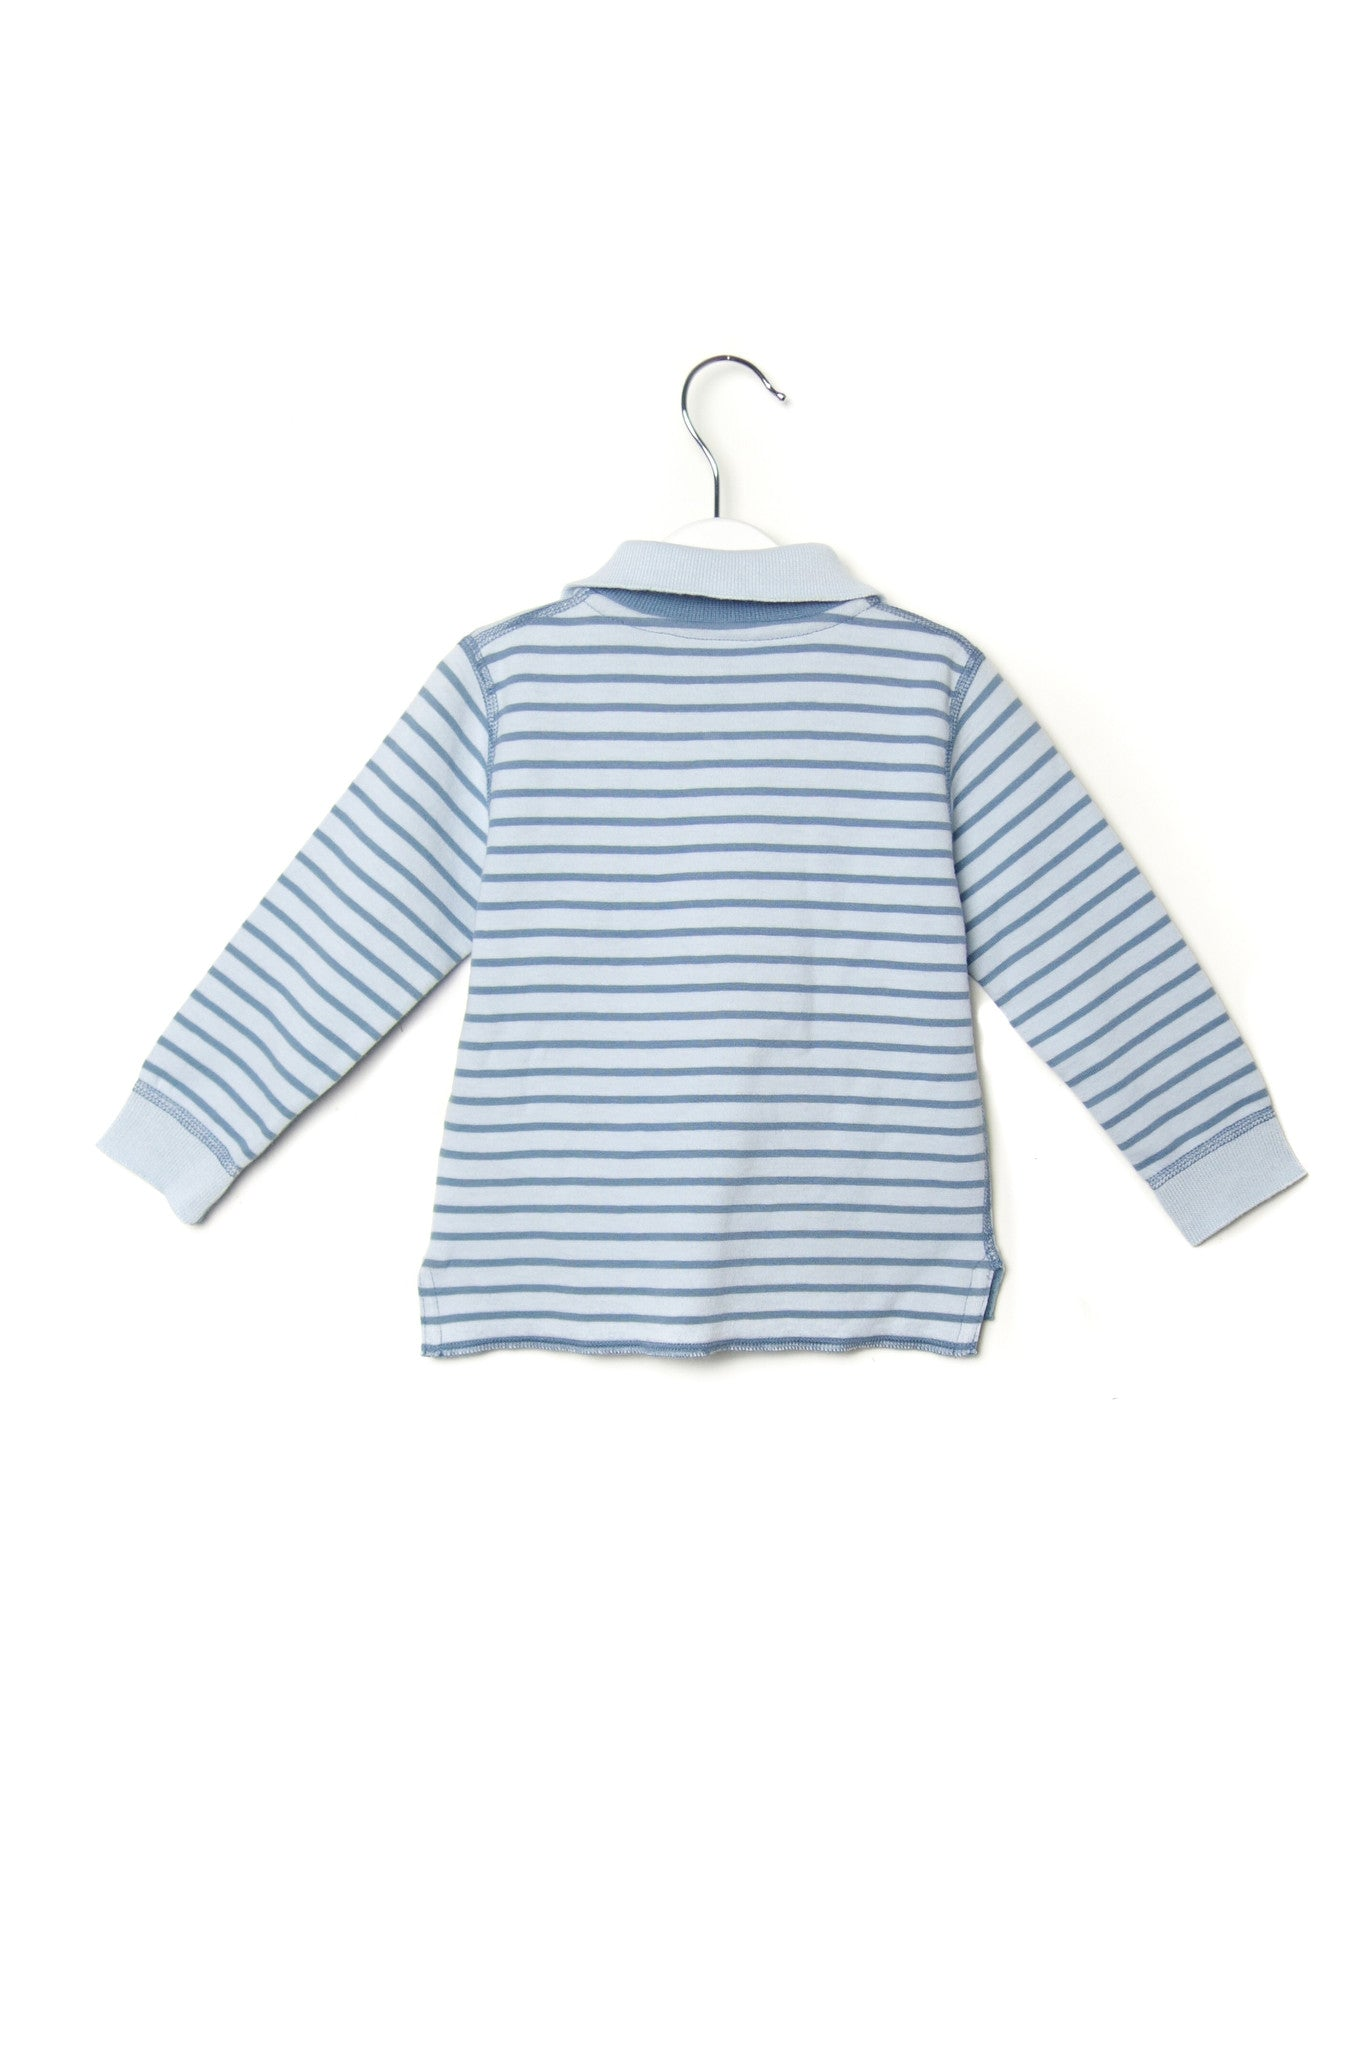 10001879 Petit Bateau Baby~Polo 12M at Retykle